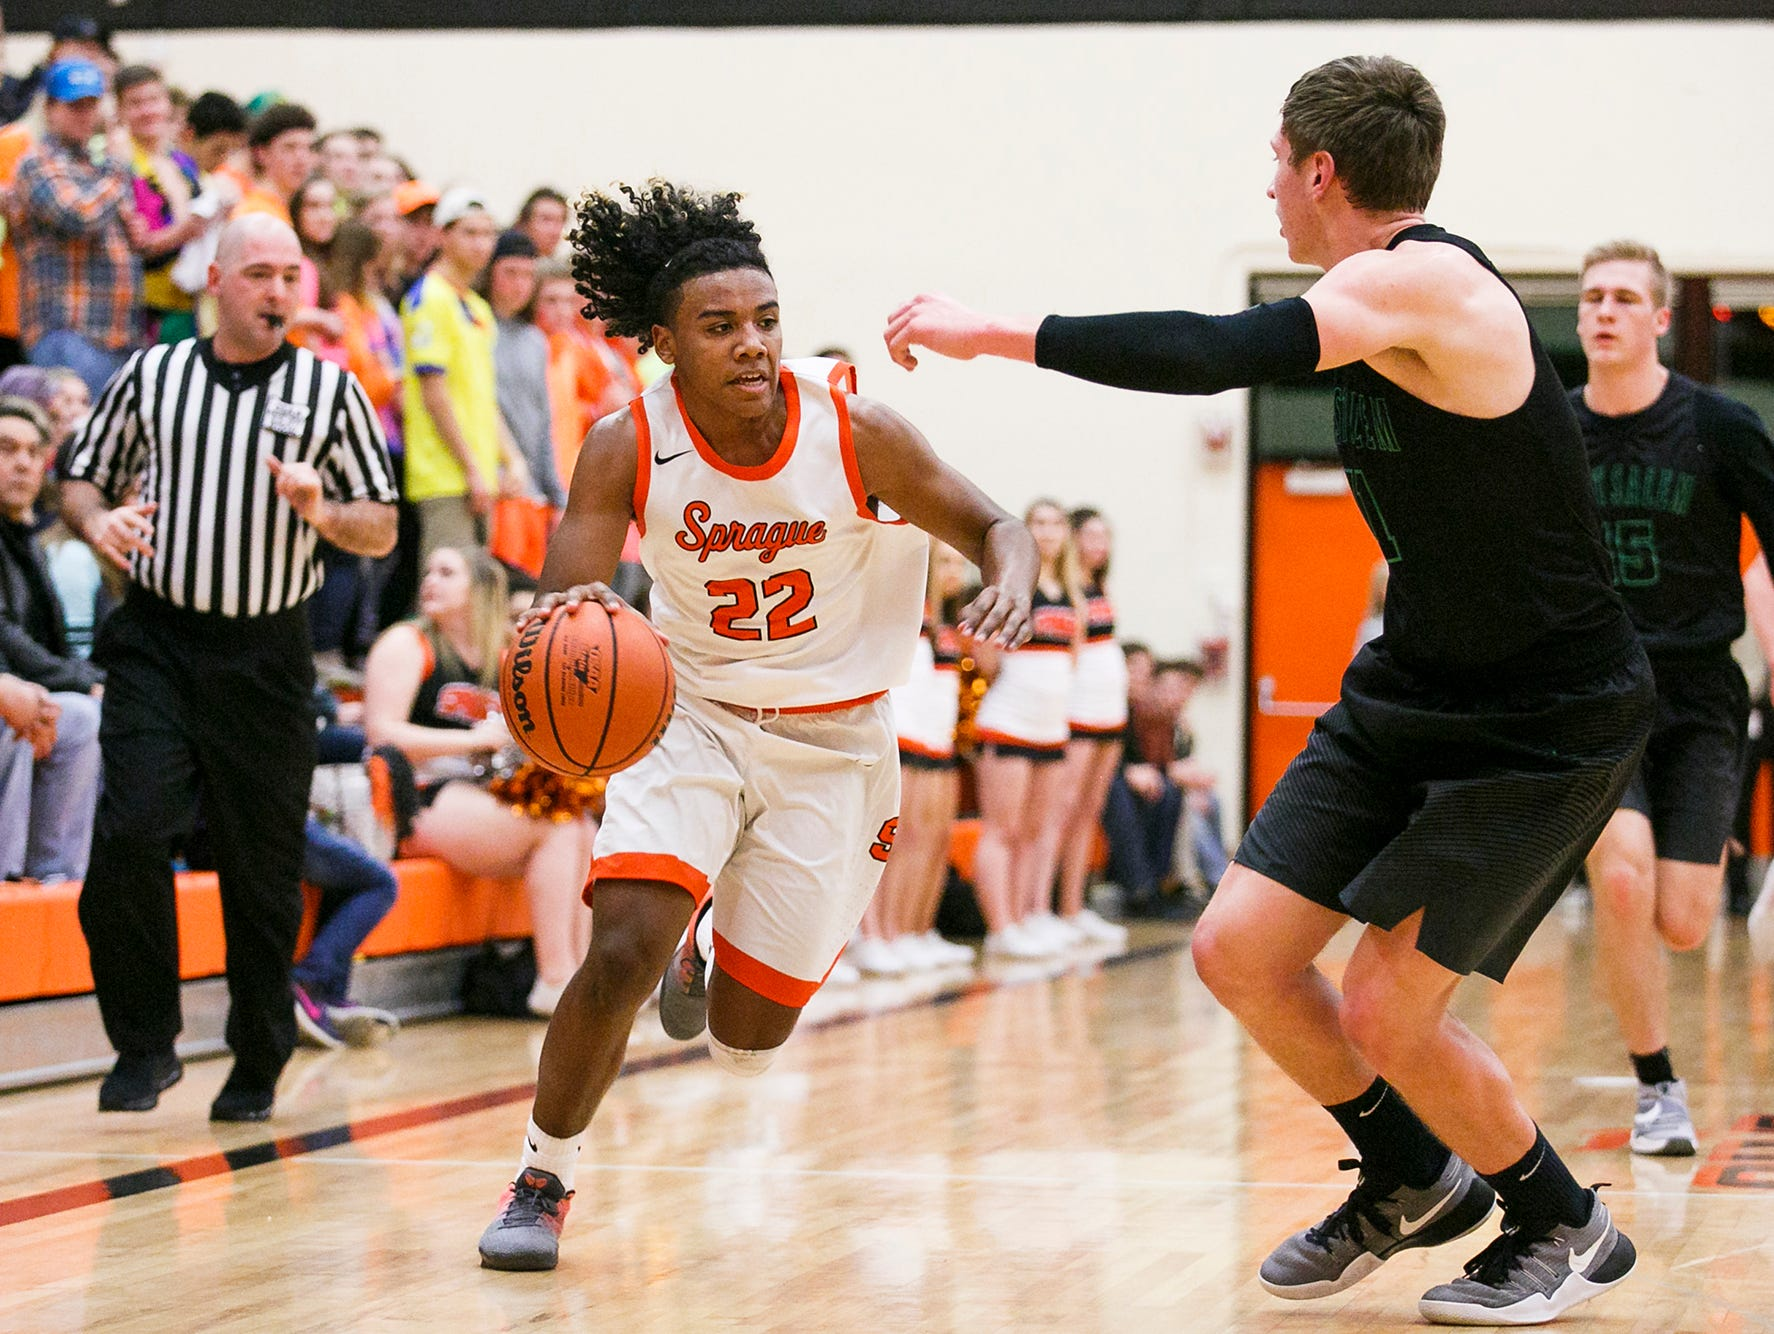 Sprague's Jailen Hammer drives toward the basket in a game against West Salem on Tuesday, Feb. 7, 2017, at Sprague High School. Sprague beat West Salem 71-65 to take first place in the Greater Valley Conference.